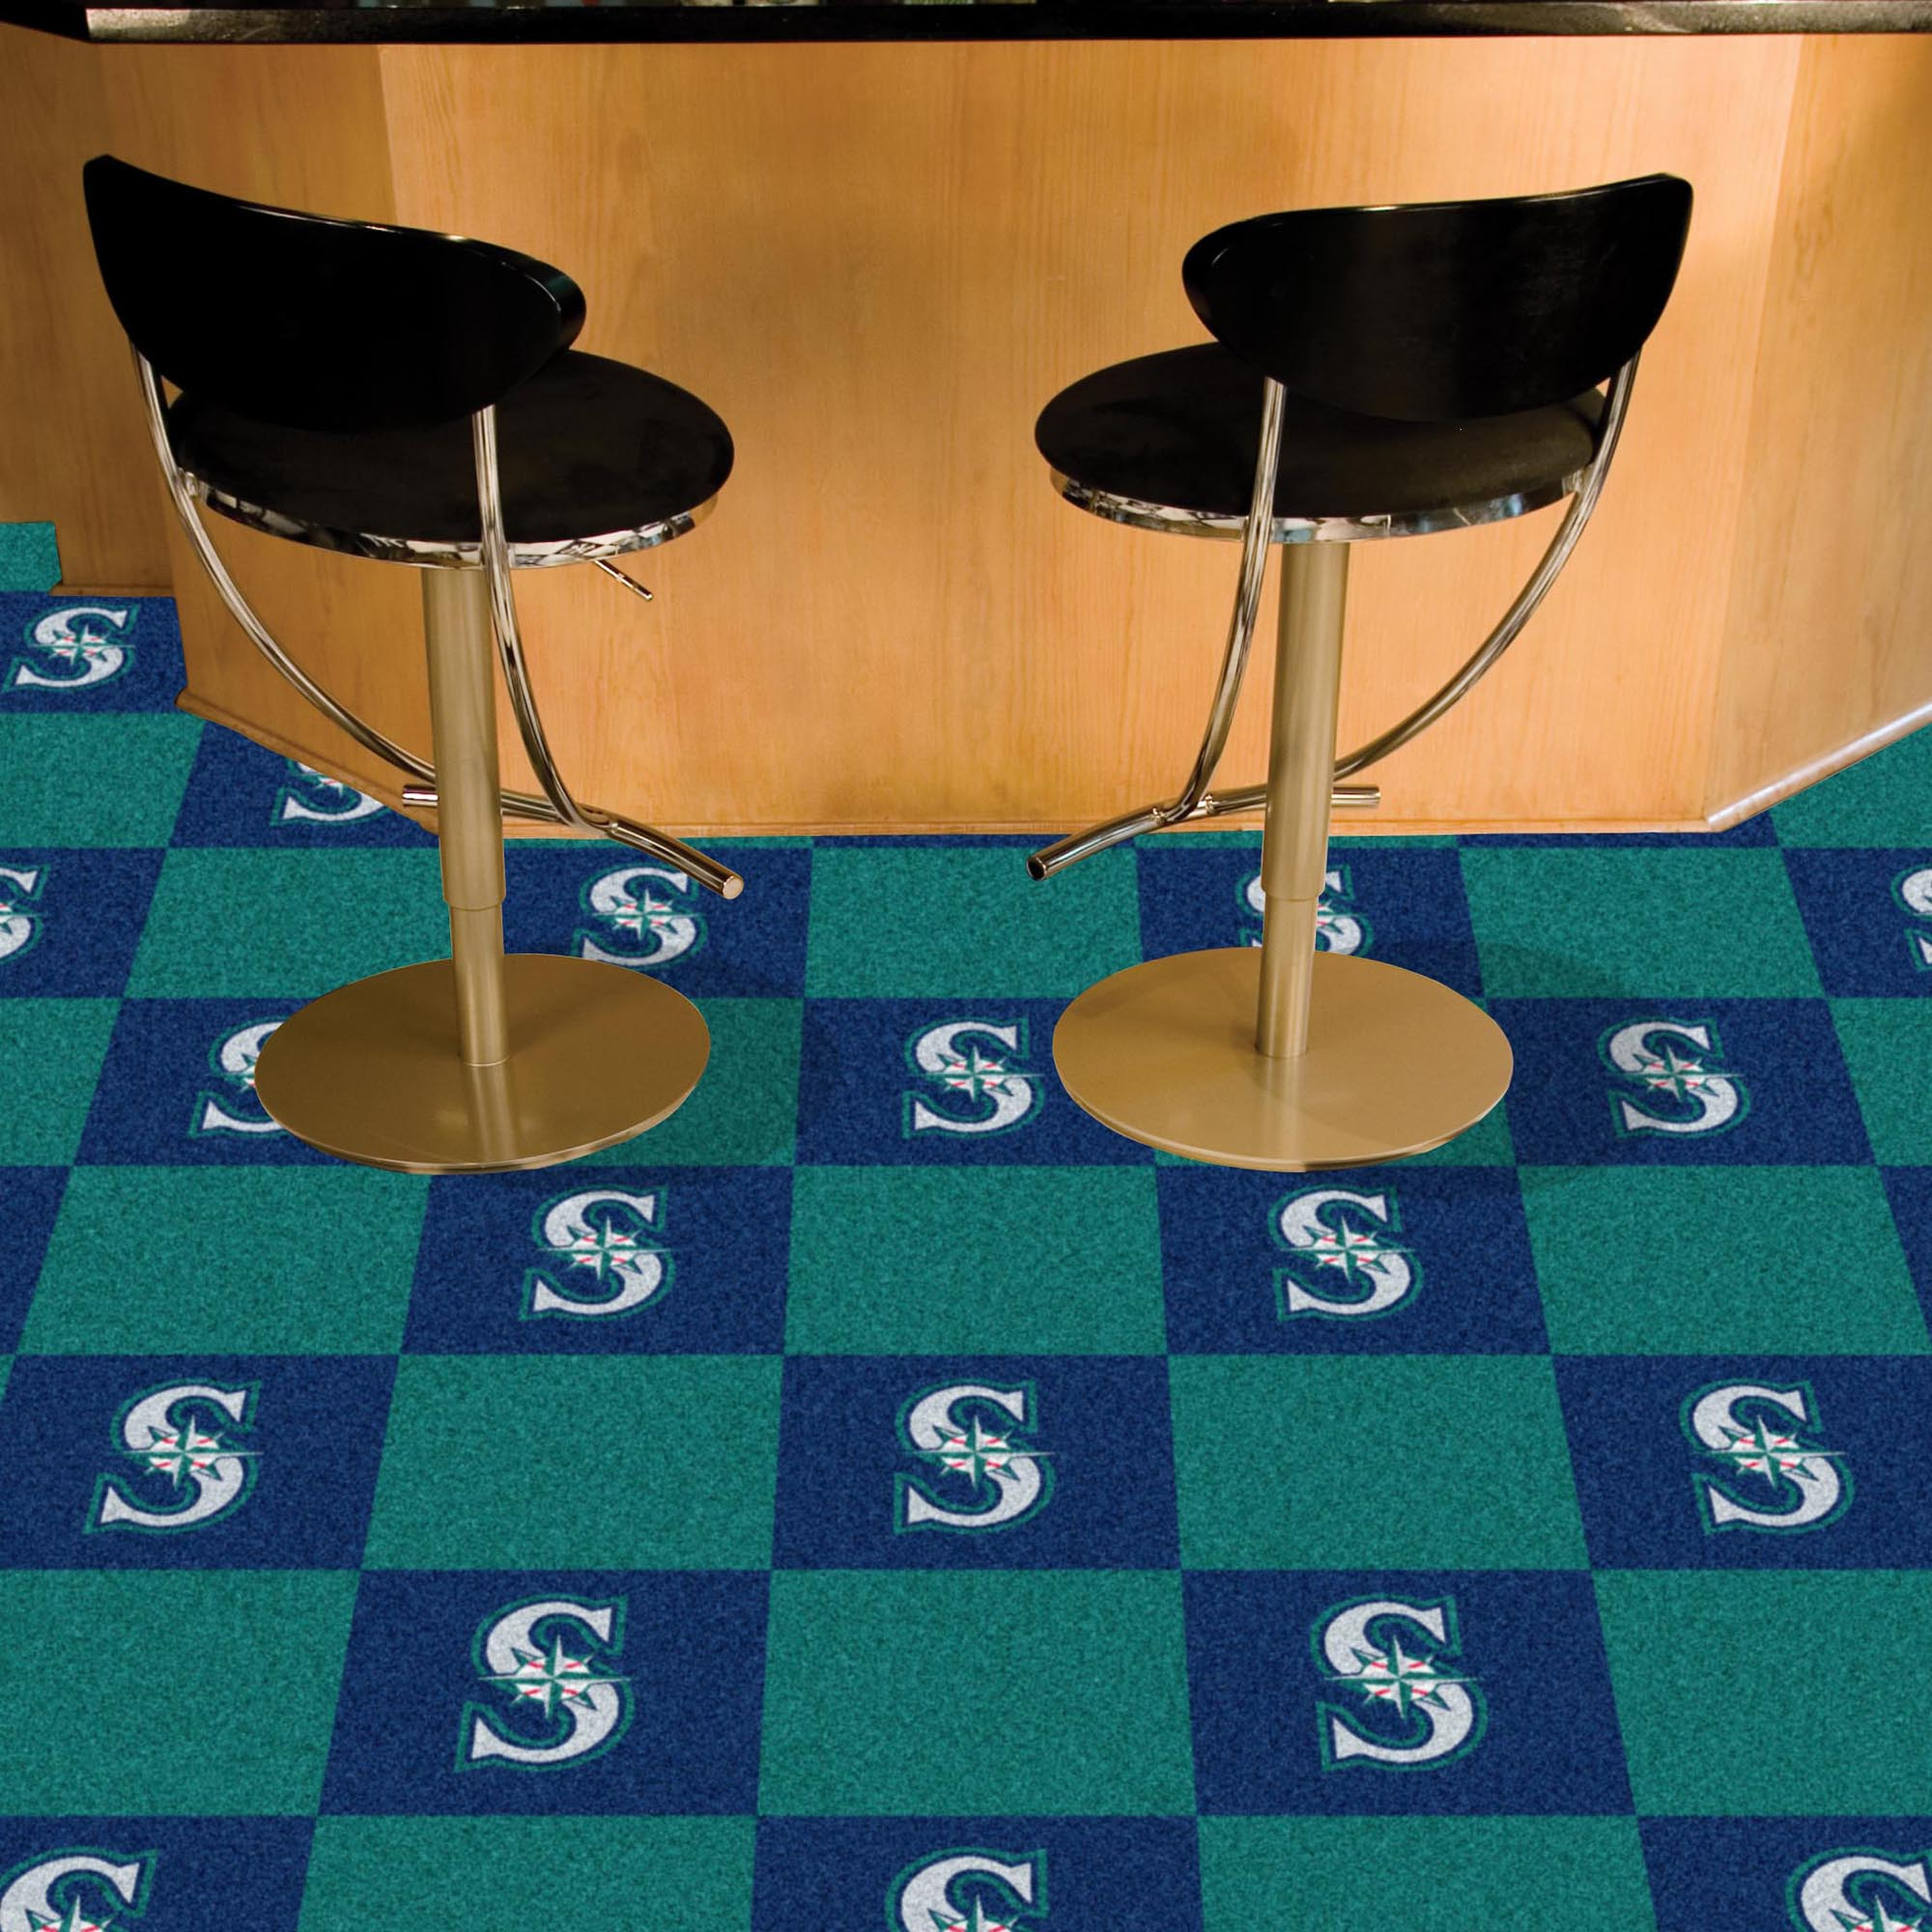 Seattle Mariners Carpet Tiles 18x18 in.